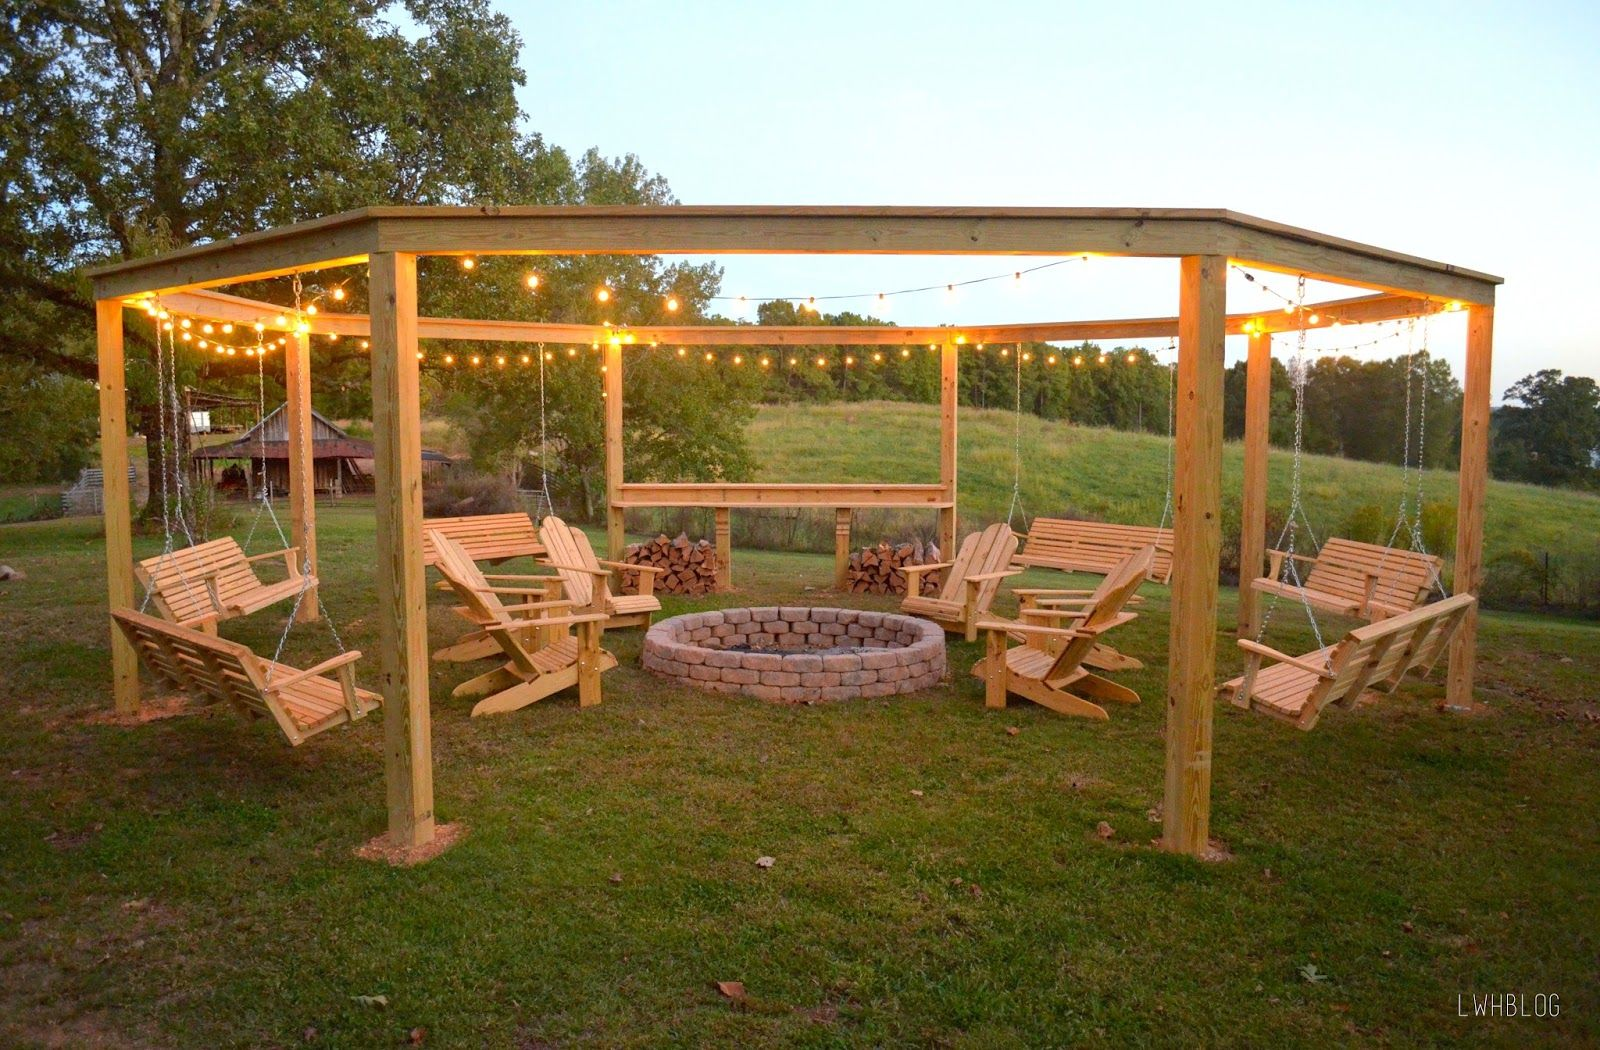 Tutorial: Build an Amazing DIY Pergola and Firepit with Swings ...